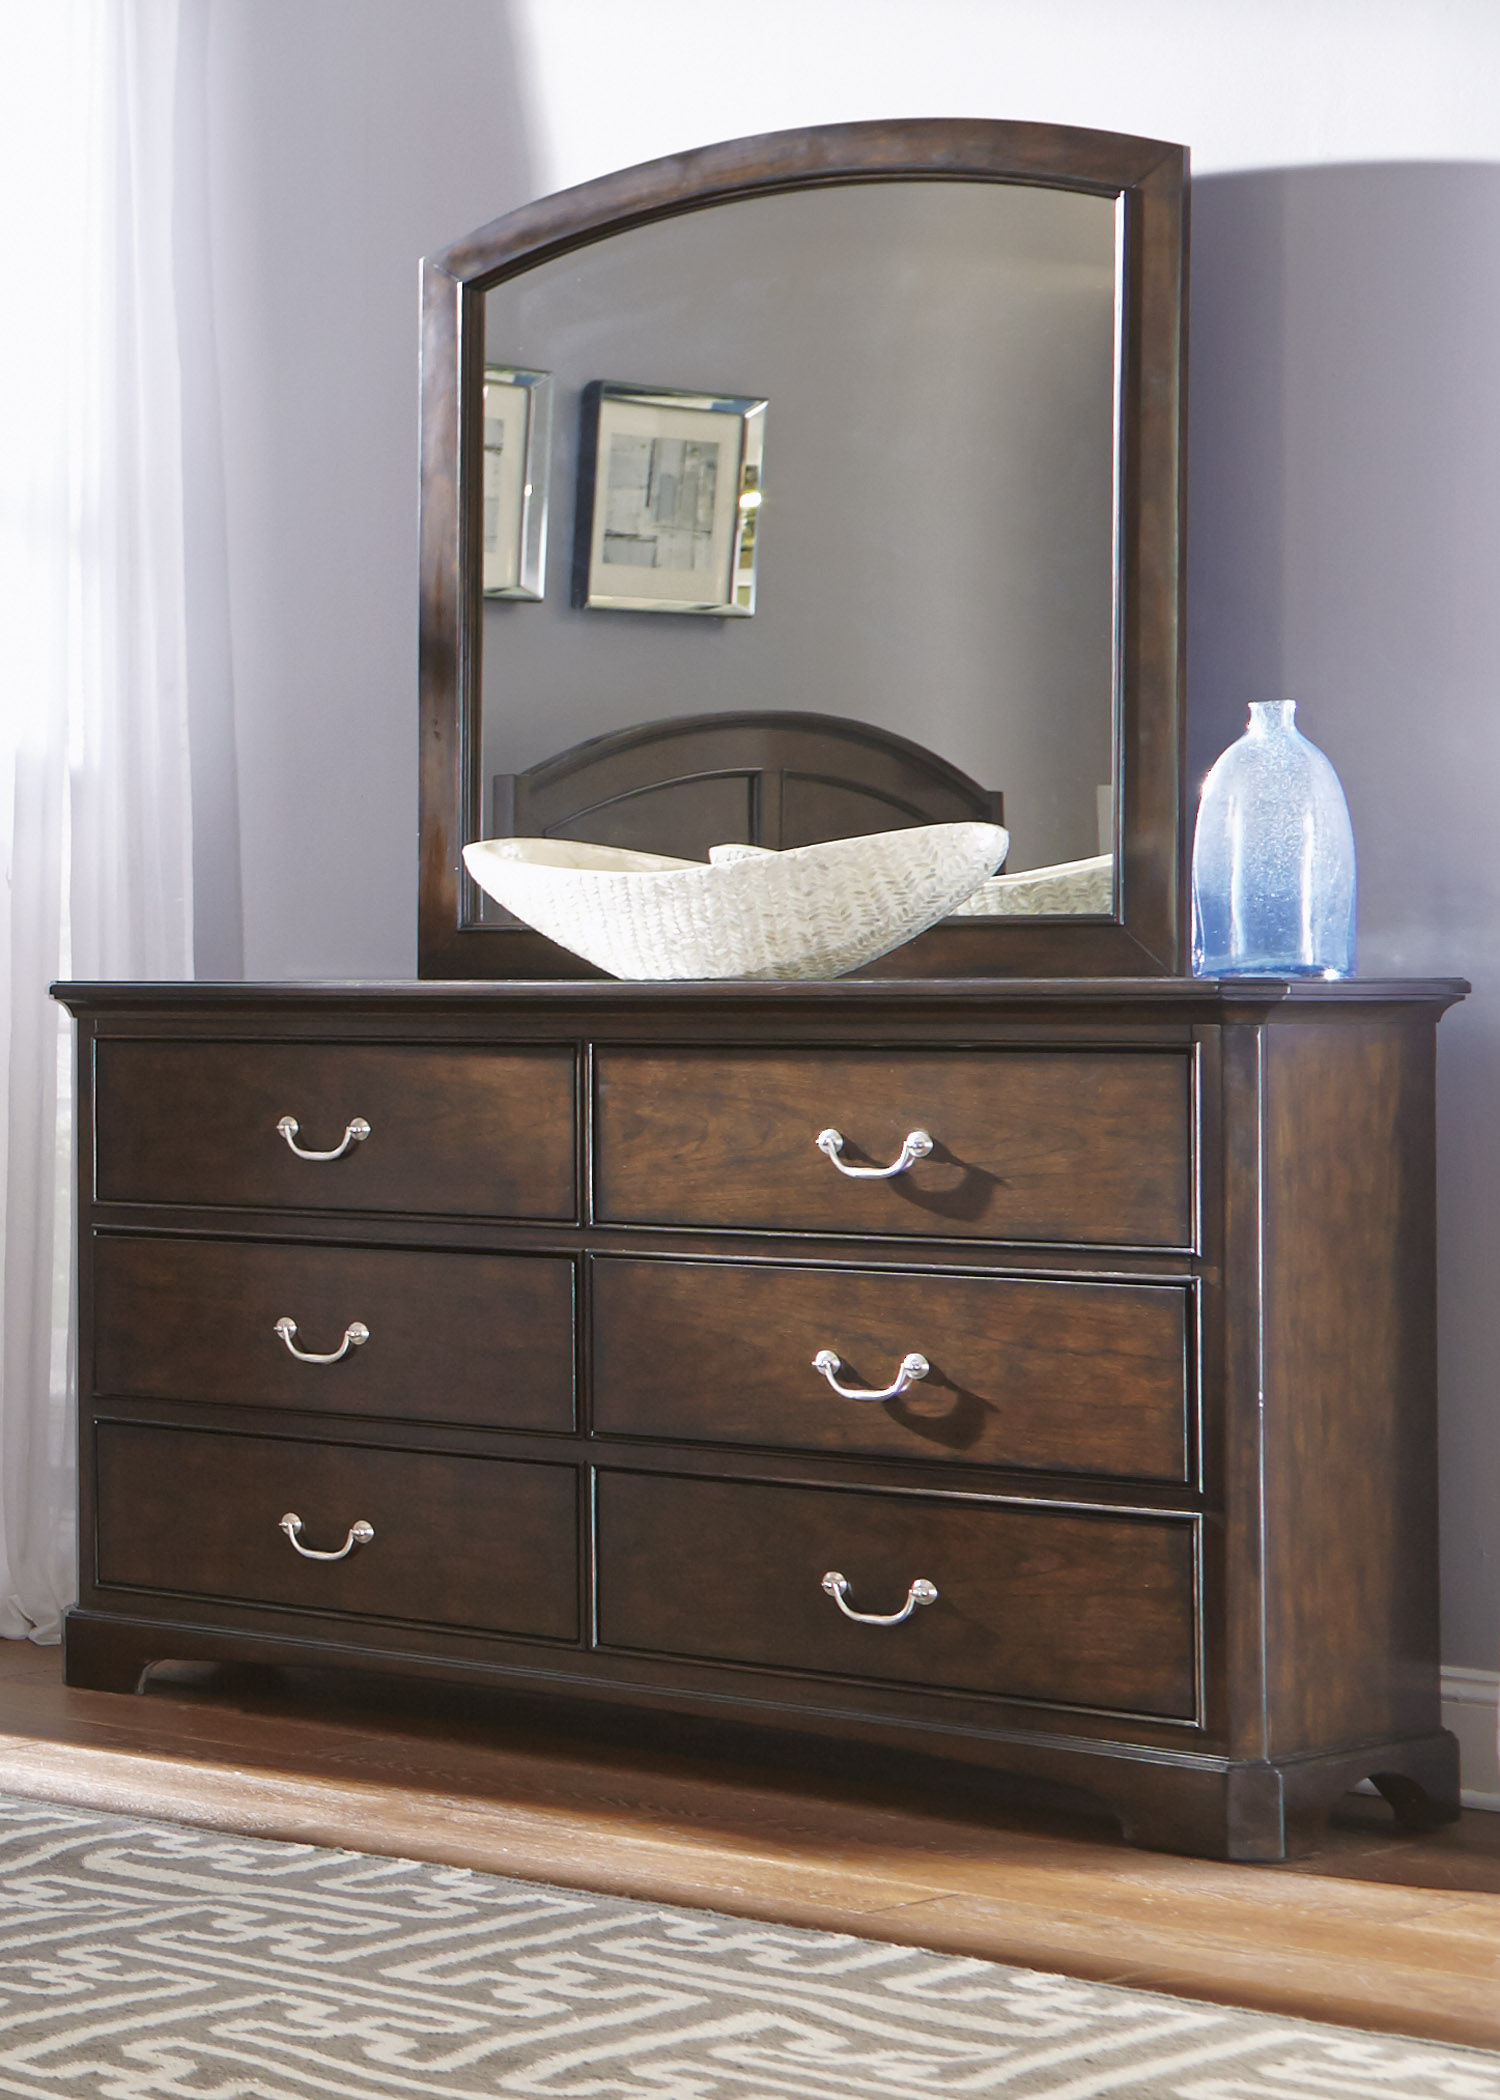 Liberty Furniture Avington Dresser & Mirror  - Item Number: 172-BR-DM